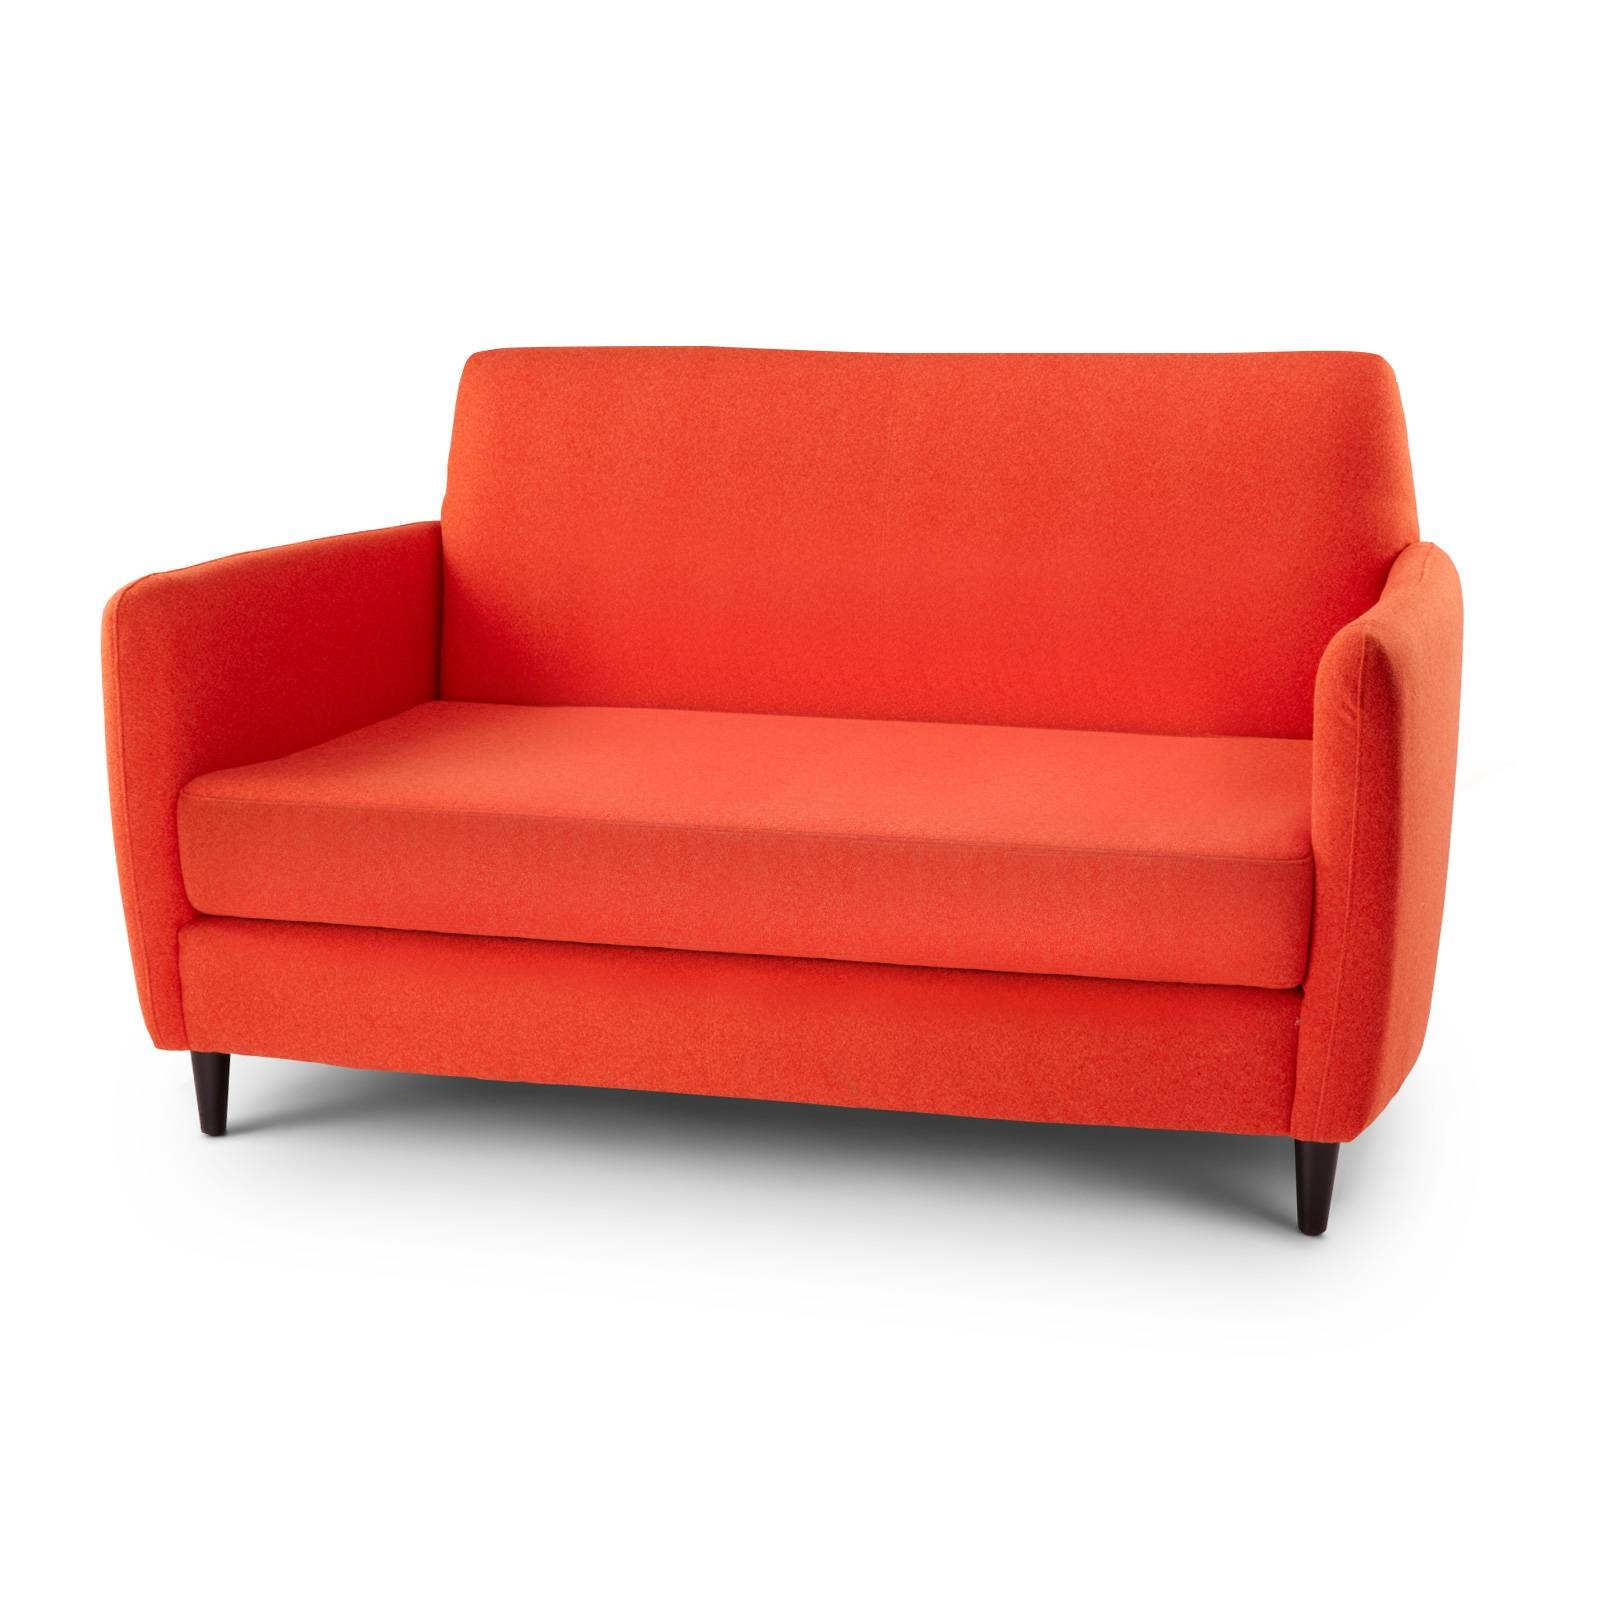 Office Furniture: Small Office Couch Images. Office Decoration inside Small Office Sofas (Image 9 of 15)